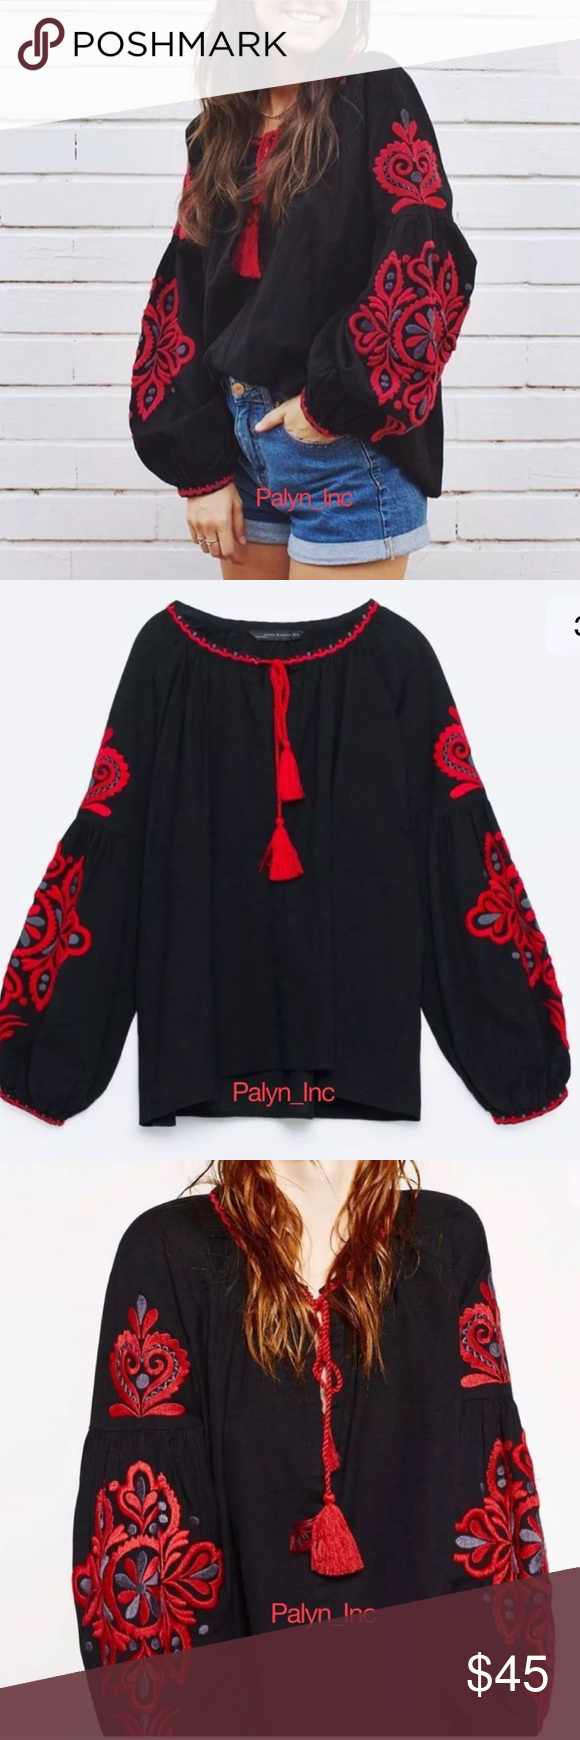 ❤️SOLD❤️Zara Embroidered Tunic Blouse Boutique